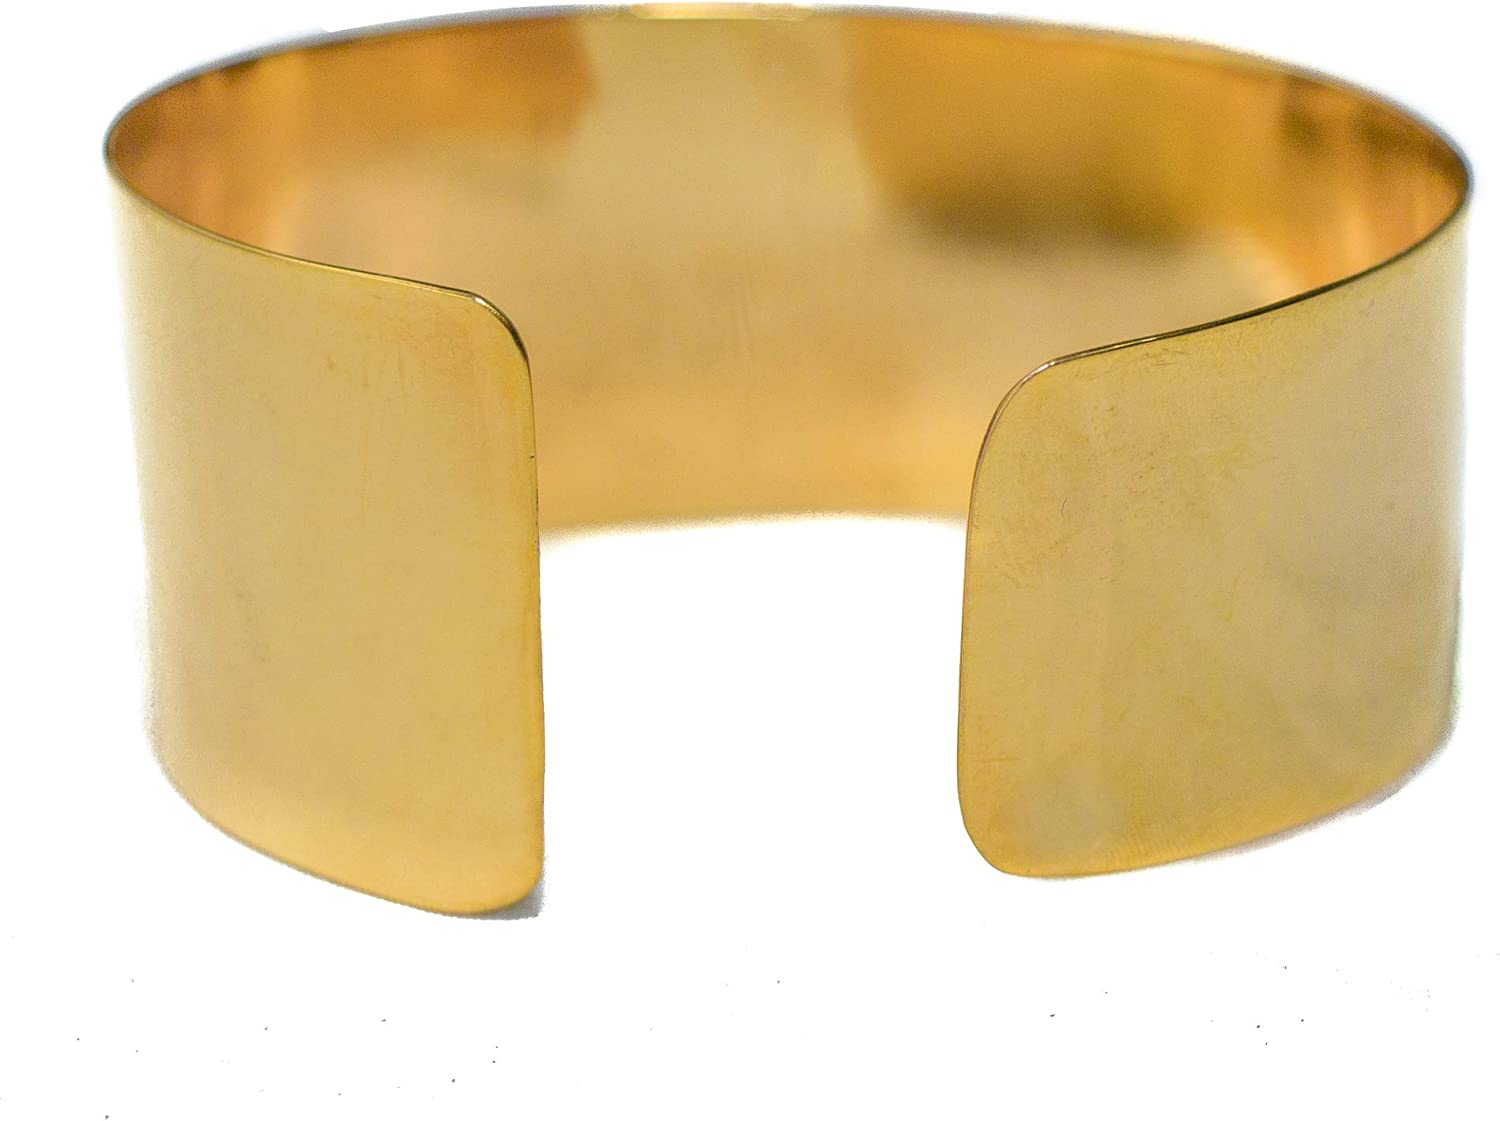 AVARCAS 101 Ethical Jewelry - 24K Gold Dipped Wide Cuff Bracelet for Women | Artisan-Made from Recycled Industrial offcuts | Resists Tarnishing|Up to 20x More 24kGold Than Other Necklaces +Free